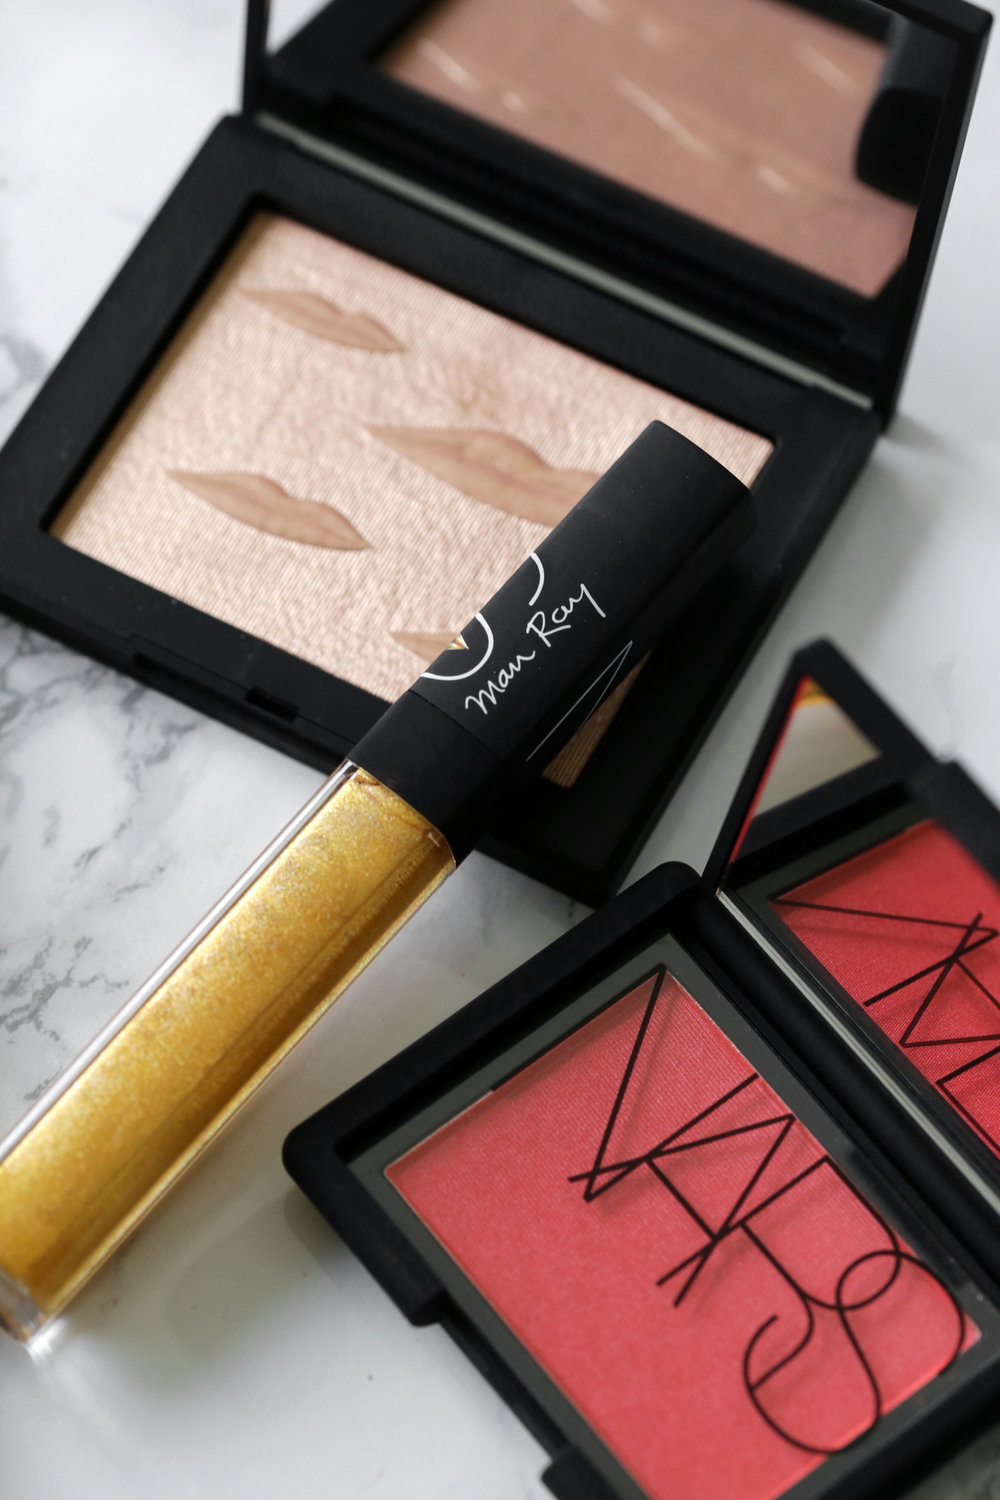 Entire Nars Man Ray Collection 2017_3233.jpg